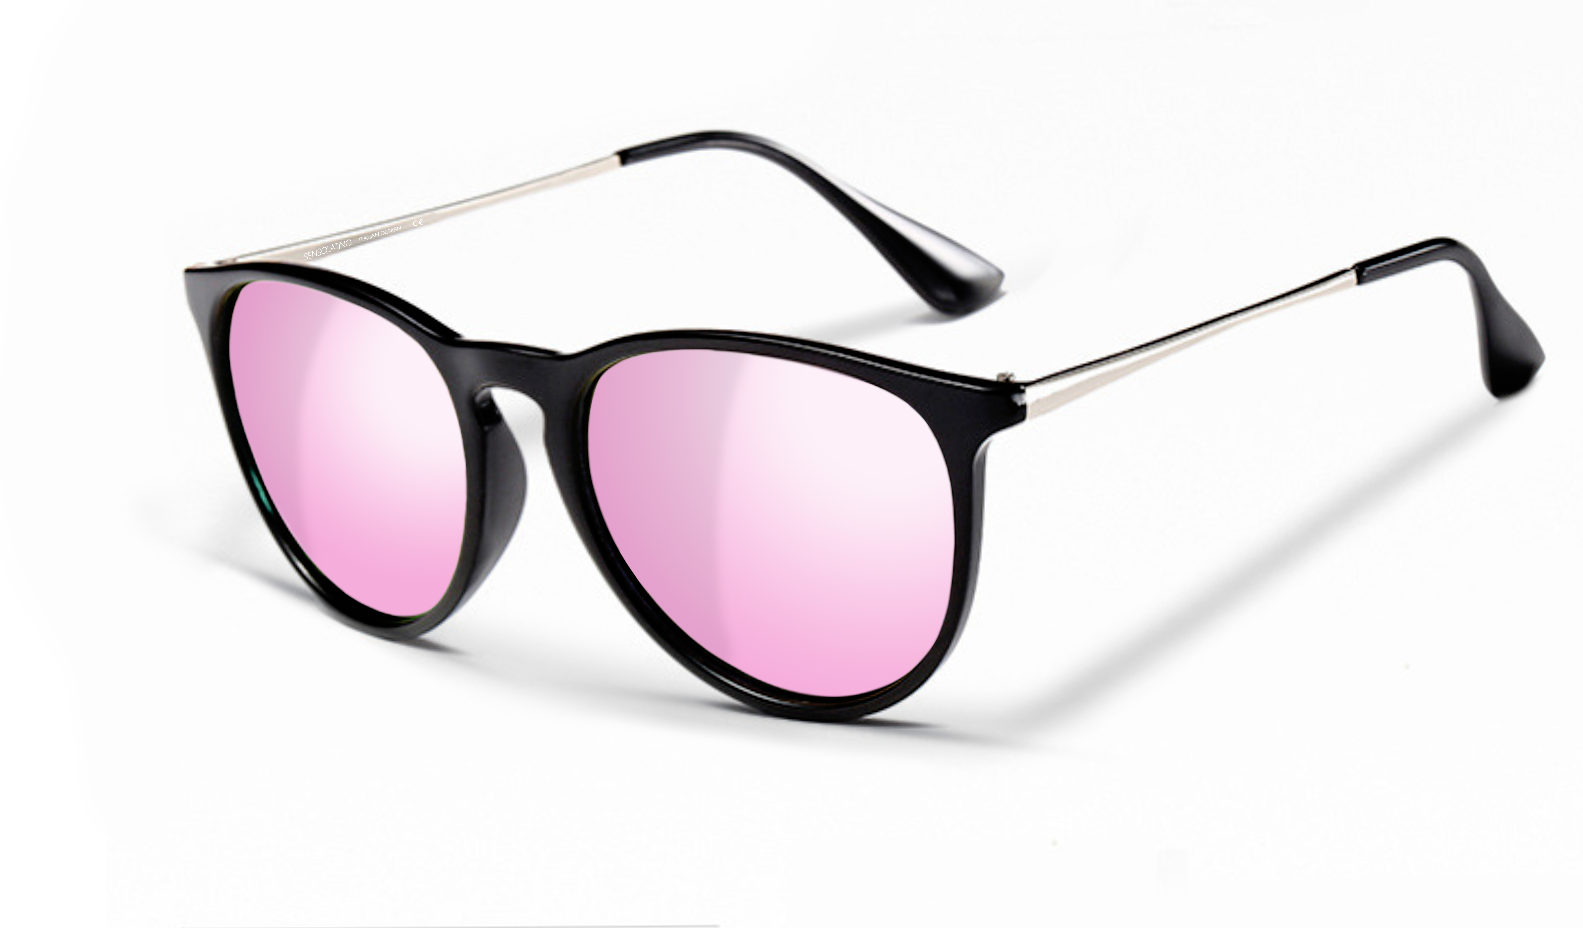 424f4ed2ad PARIS WITH PINK MIRRORED LENSES